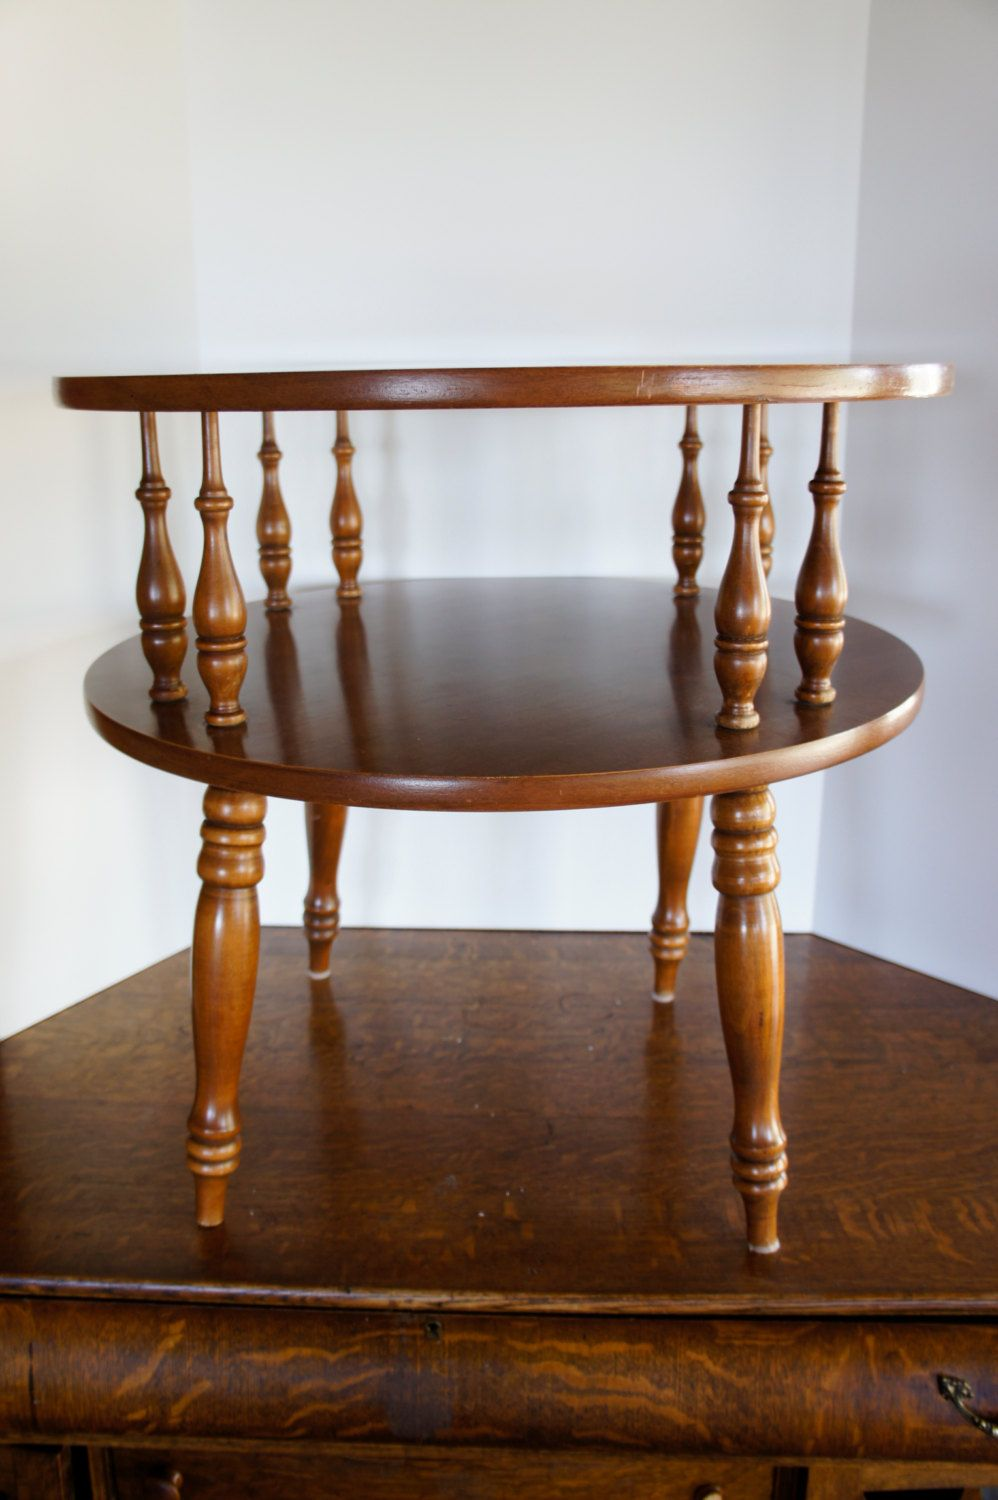 Vintage Round Wood End Table 2 Tier Colonial Drum от Gleaned